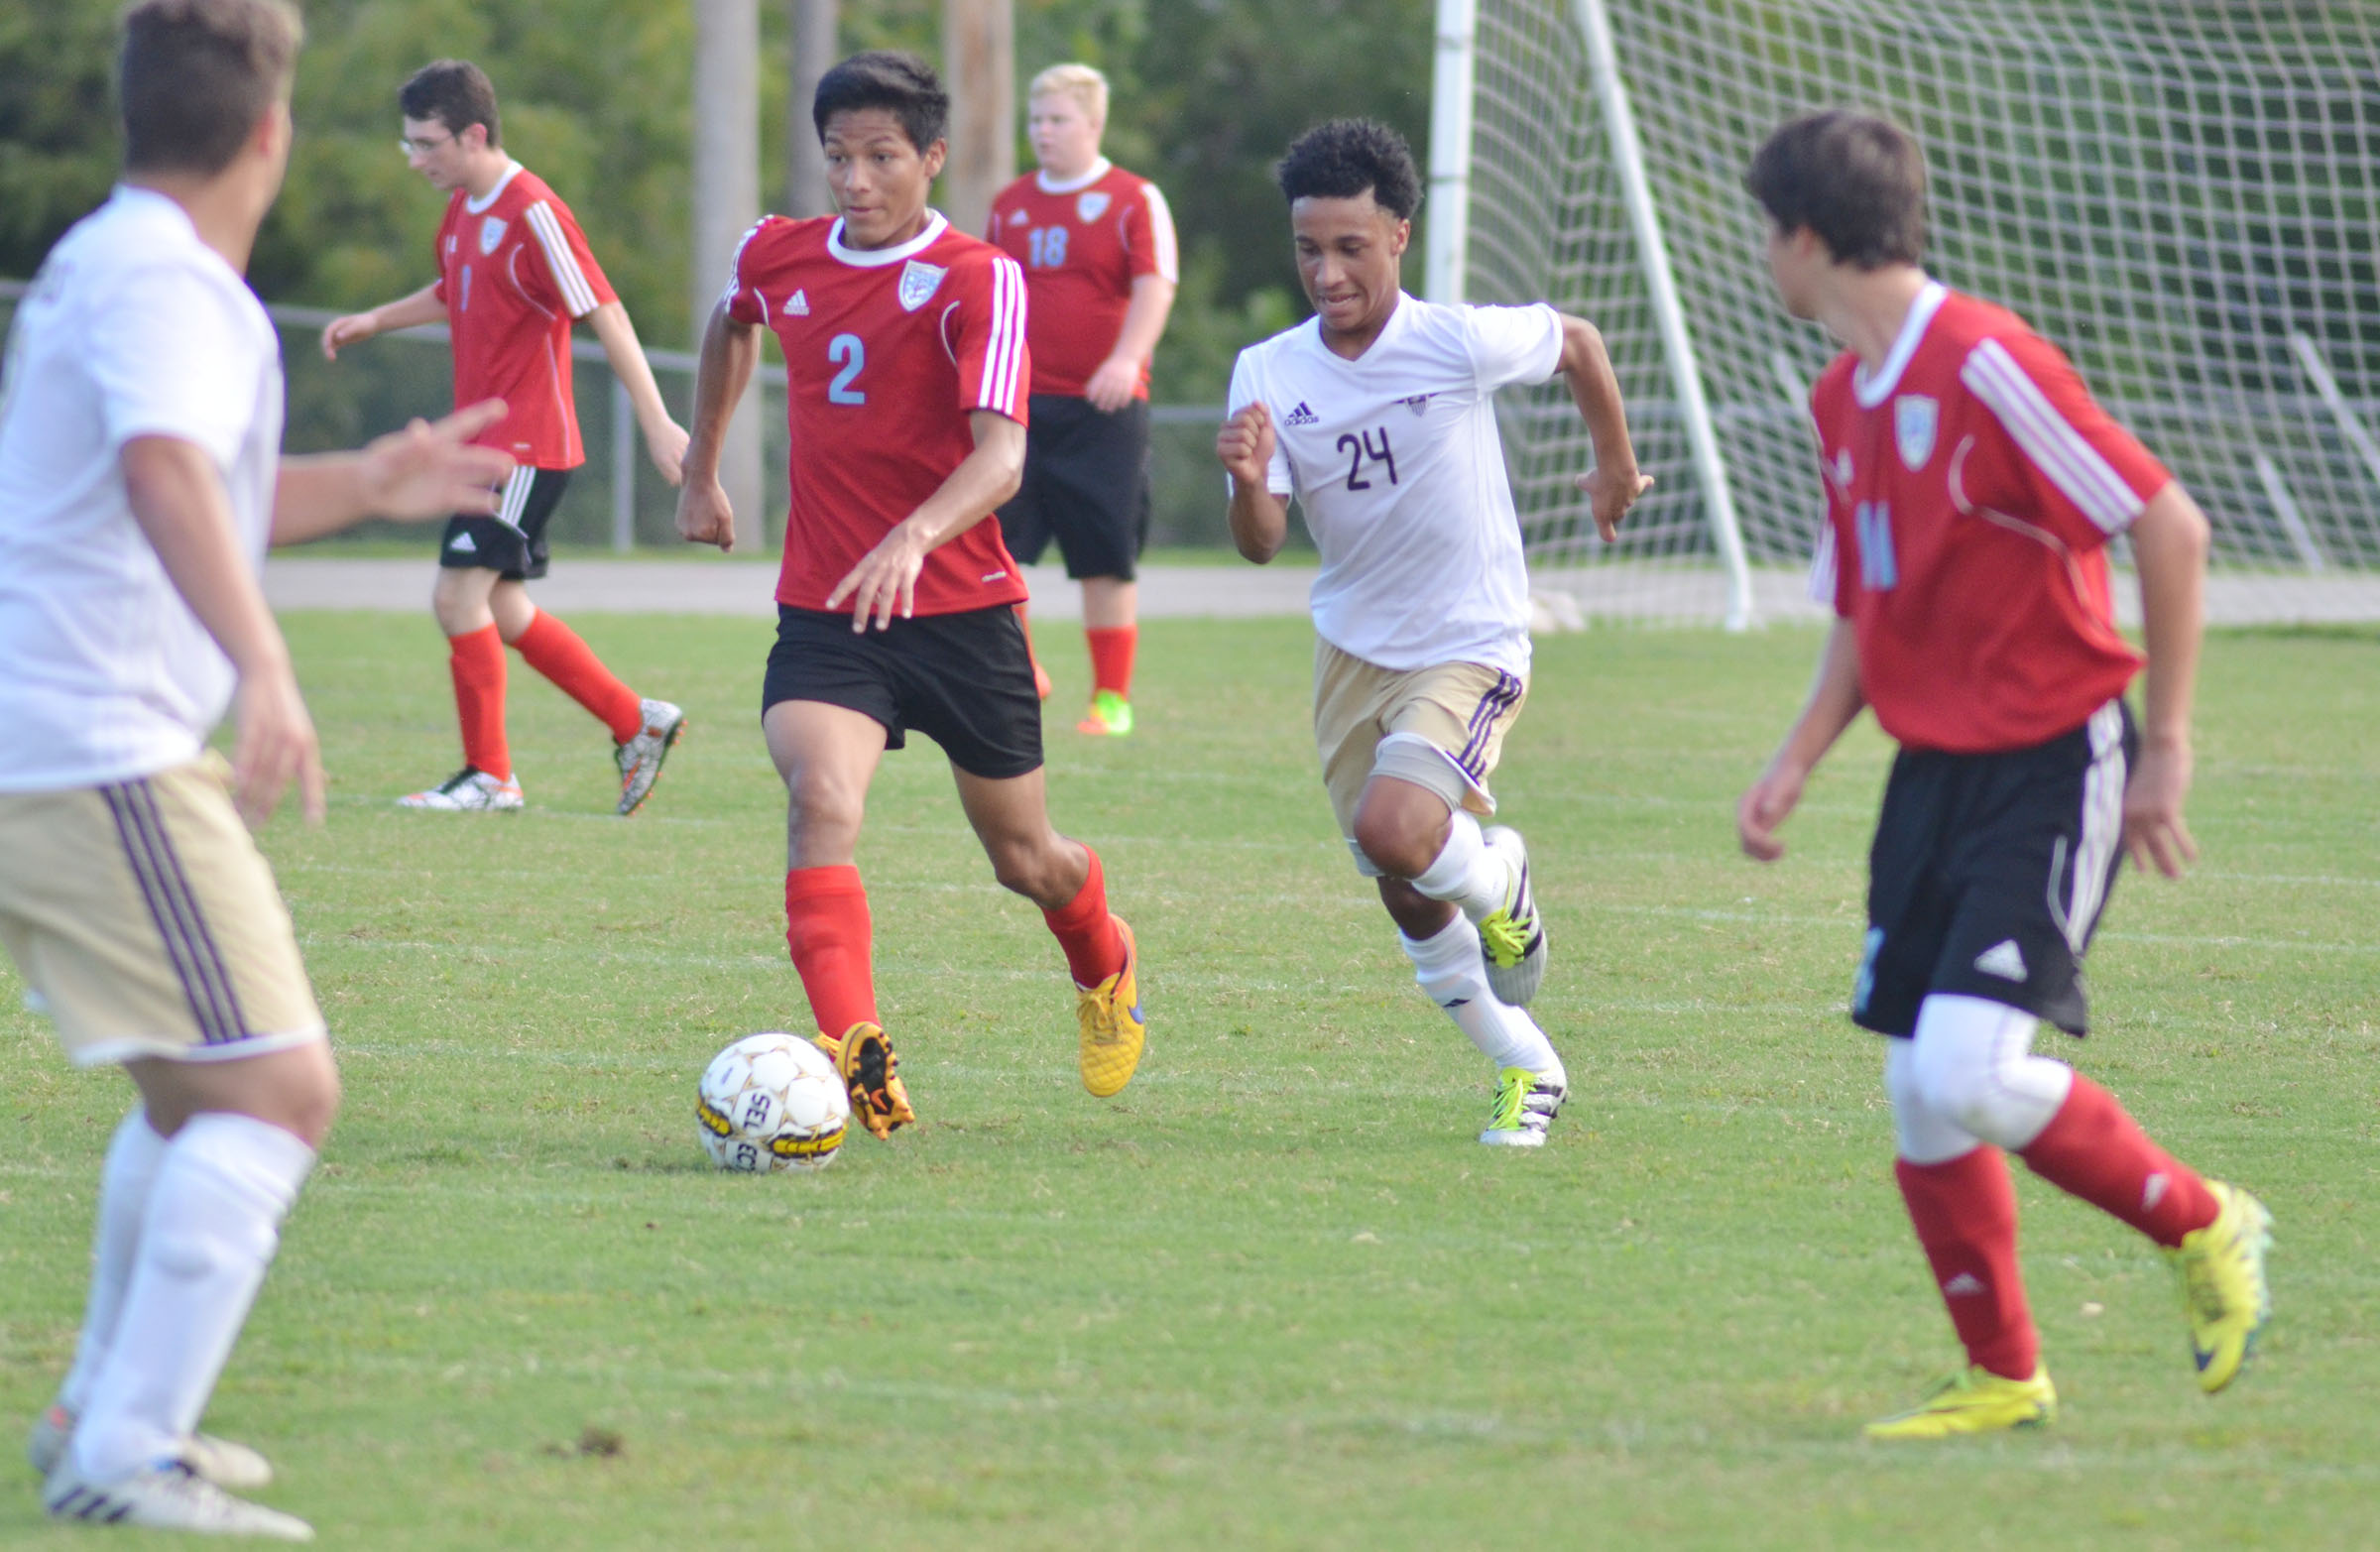 CHS sophomore Daniel Johnson runs to the ball.